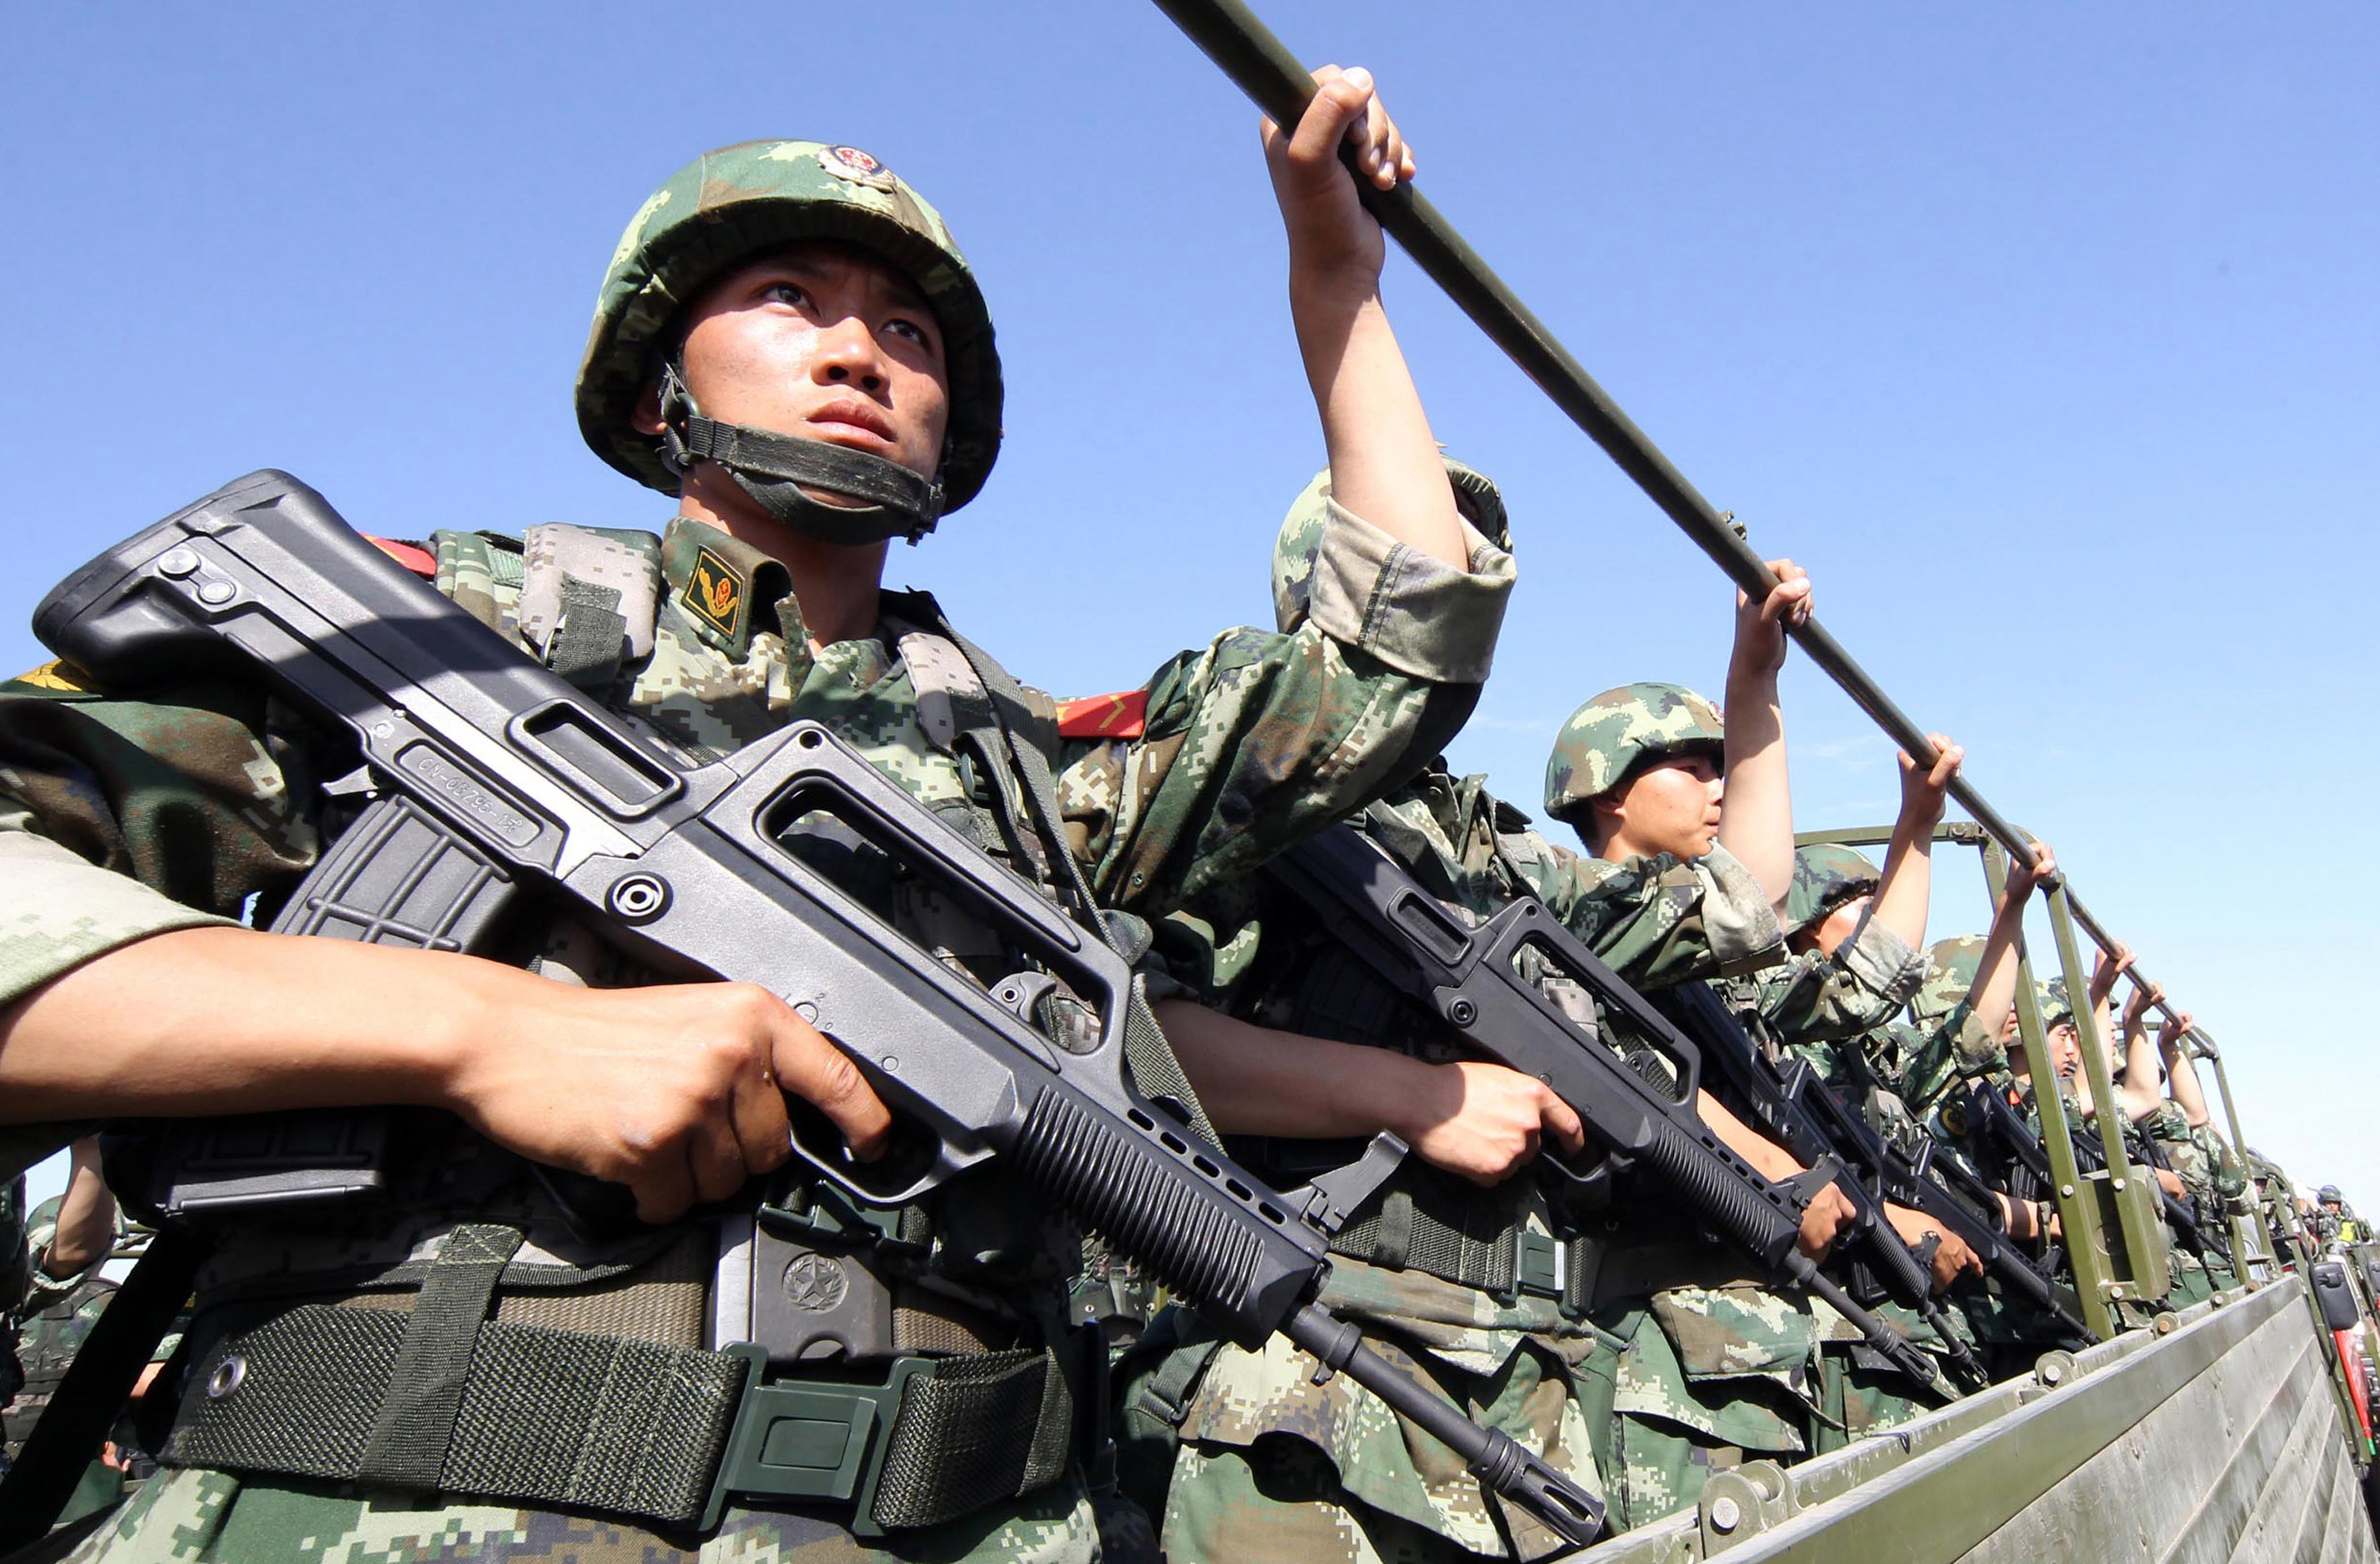 An antiterrorism force including public-security police and the armed police attend an antiterrorism joint exercise in Hami, northwest China's Xinjiang region, on July 2, 2013